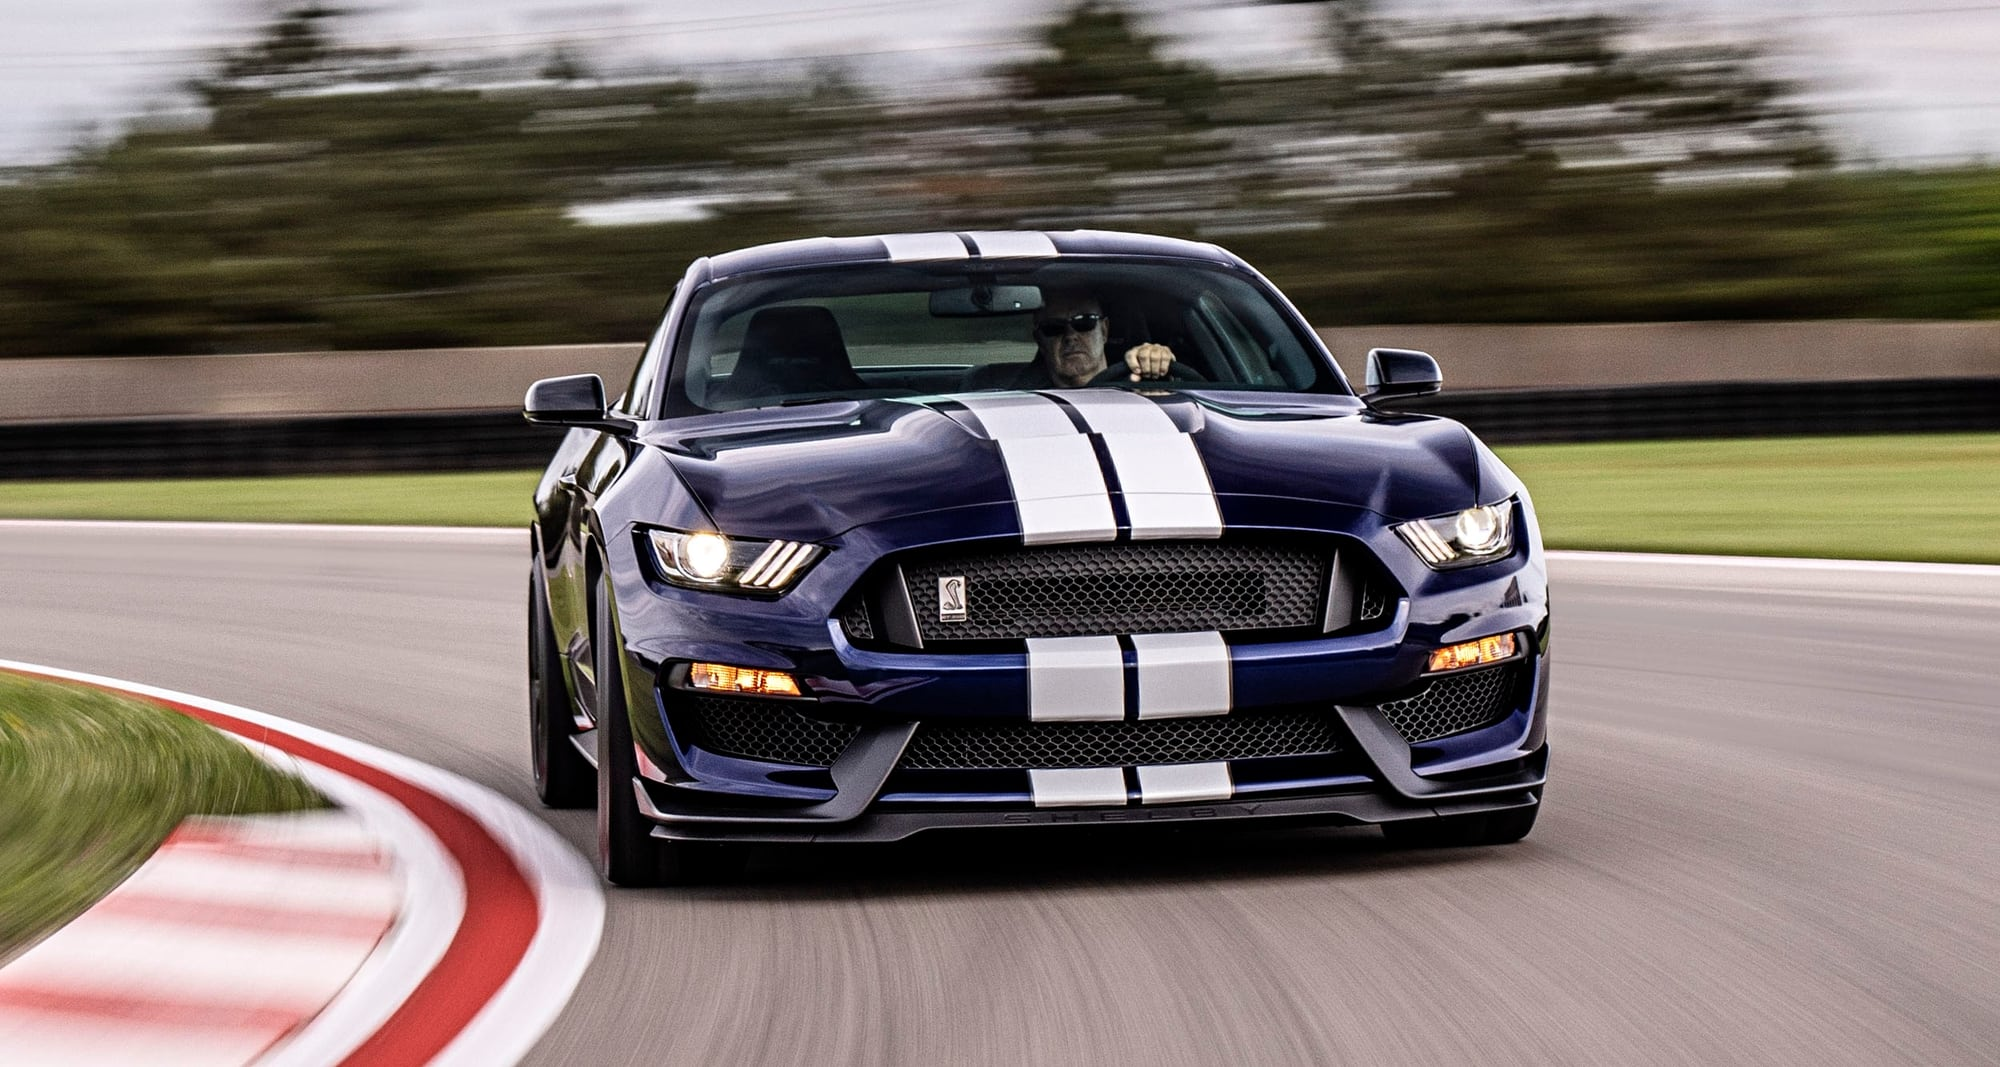 2020 Shelby GT500 front view on road course